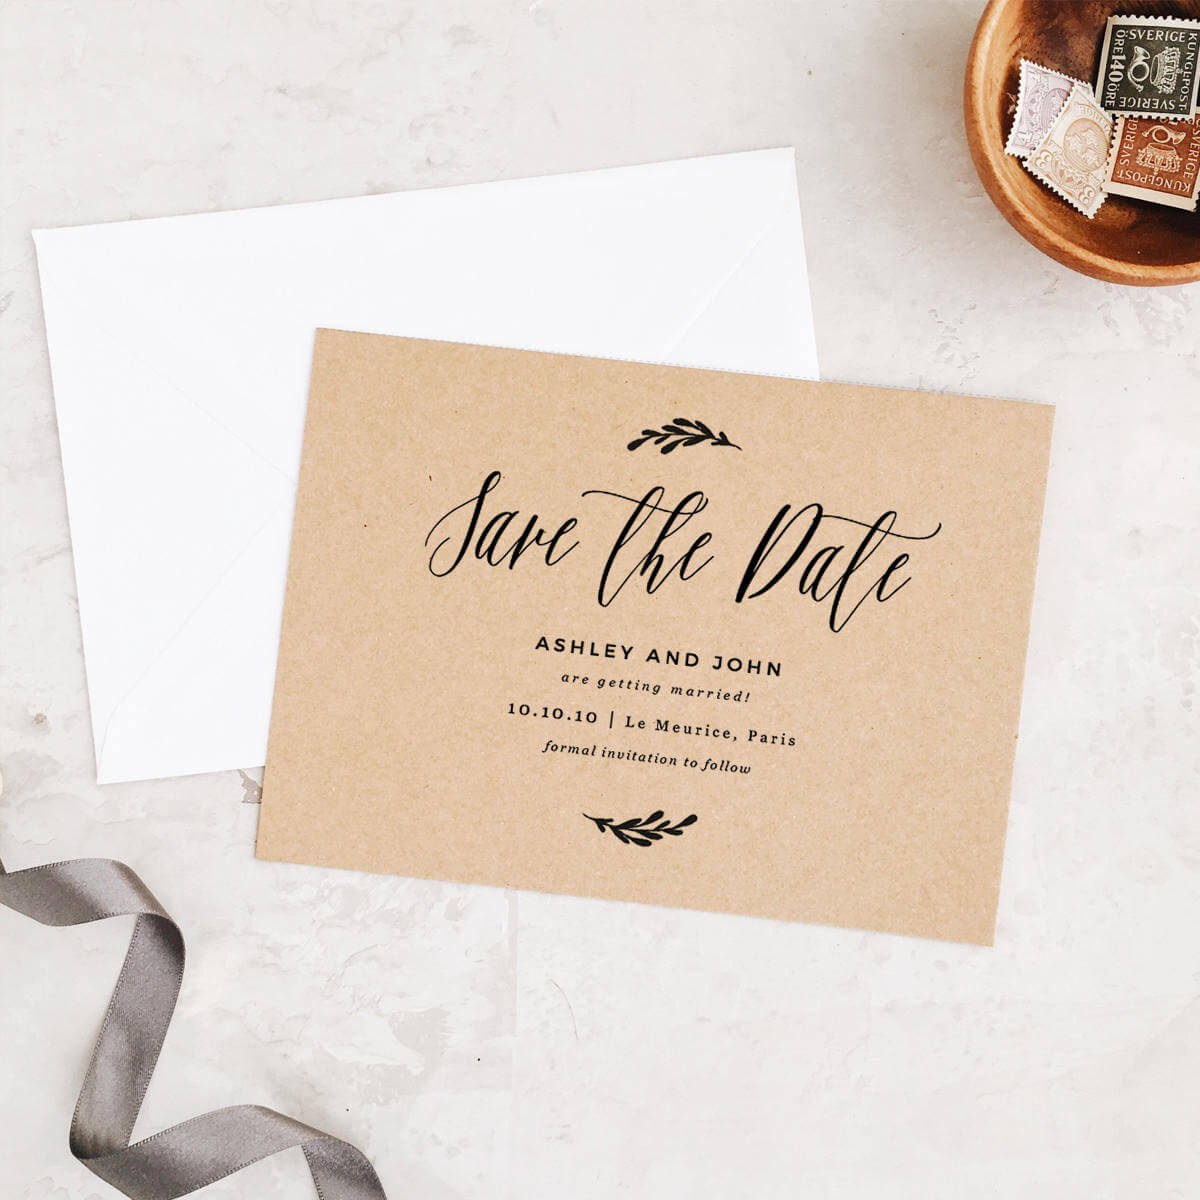 027 Save The Date Template Word Il Fullxfull 1386085899 Cnkb In Save The Date Templates Word